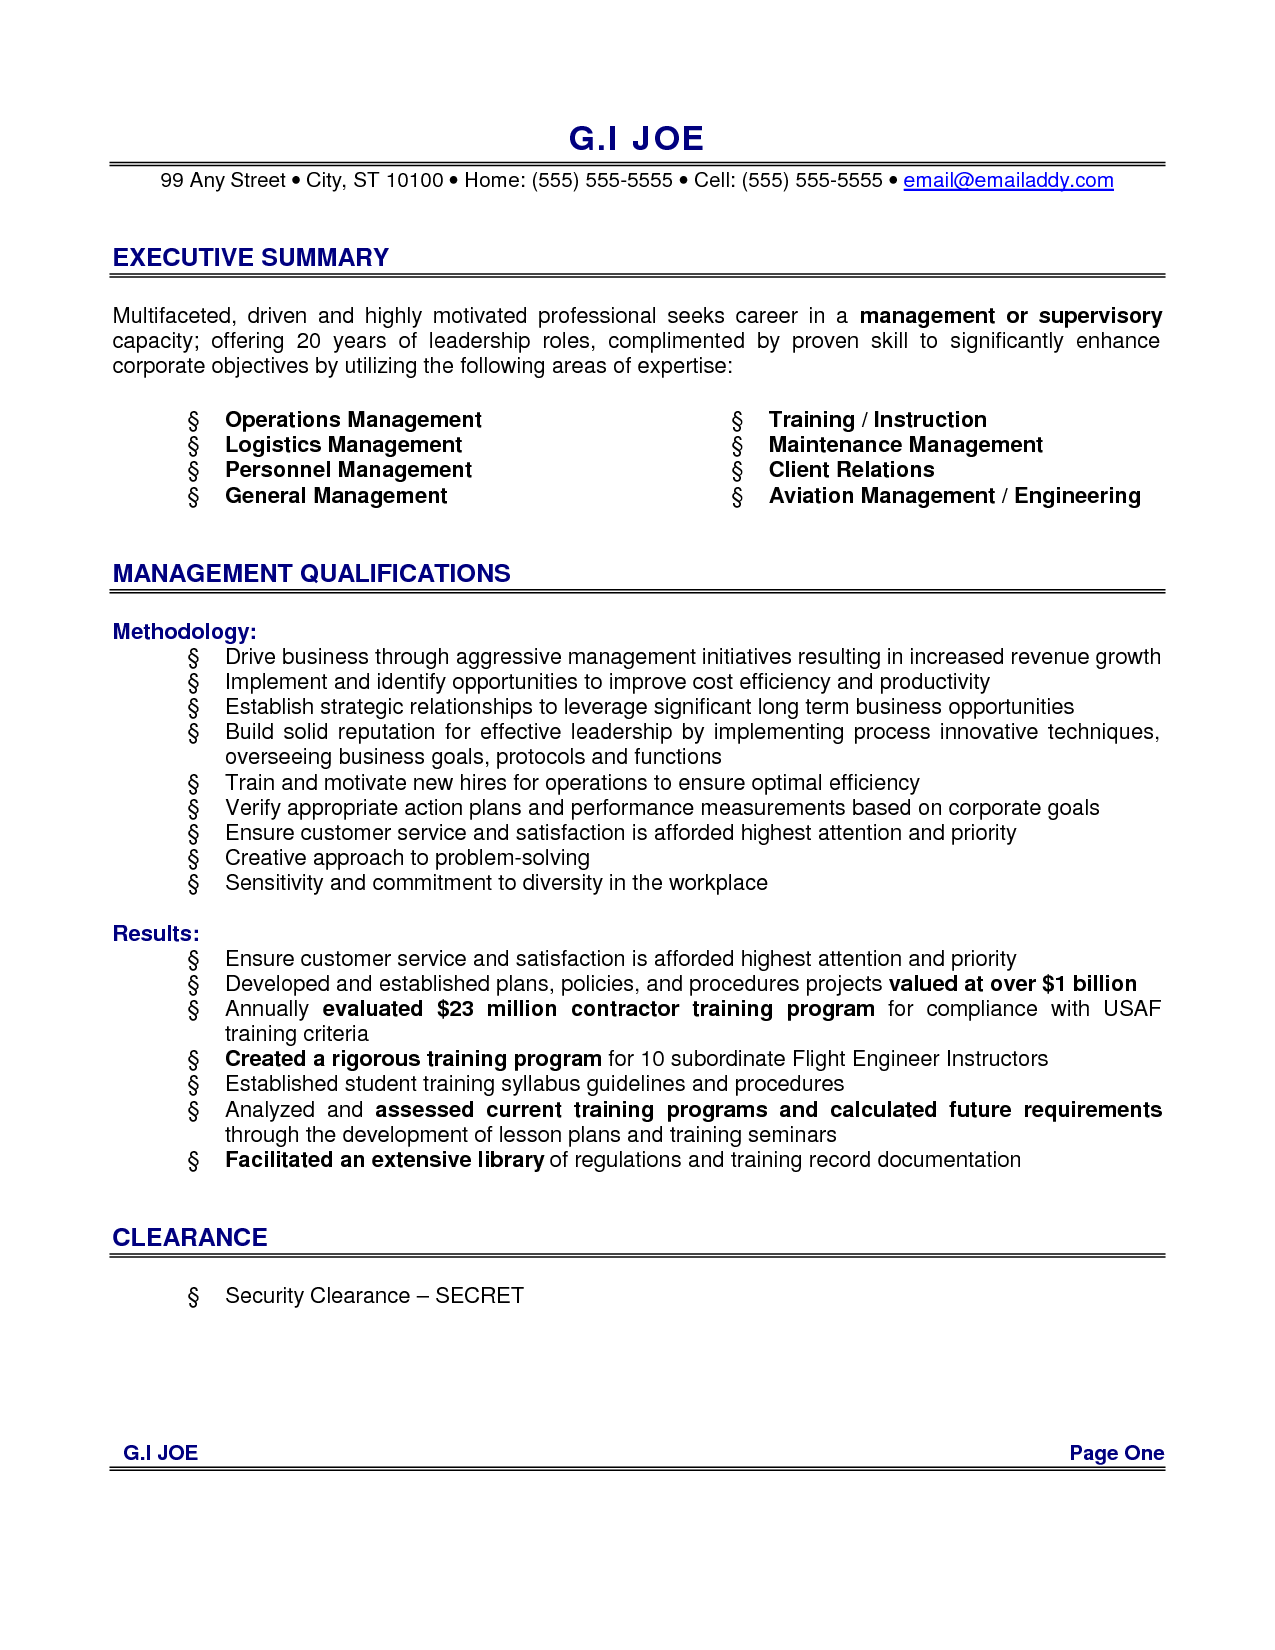 resume examples for executive summary with management qualifications executive resume example as writing guidelines following the best examples in